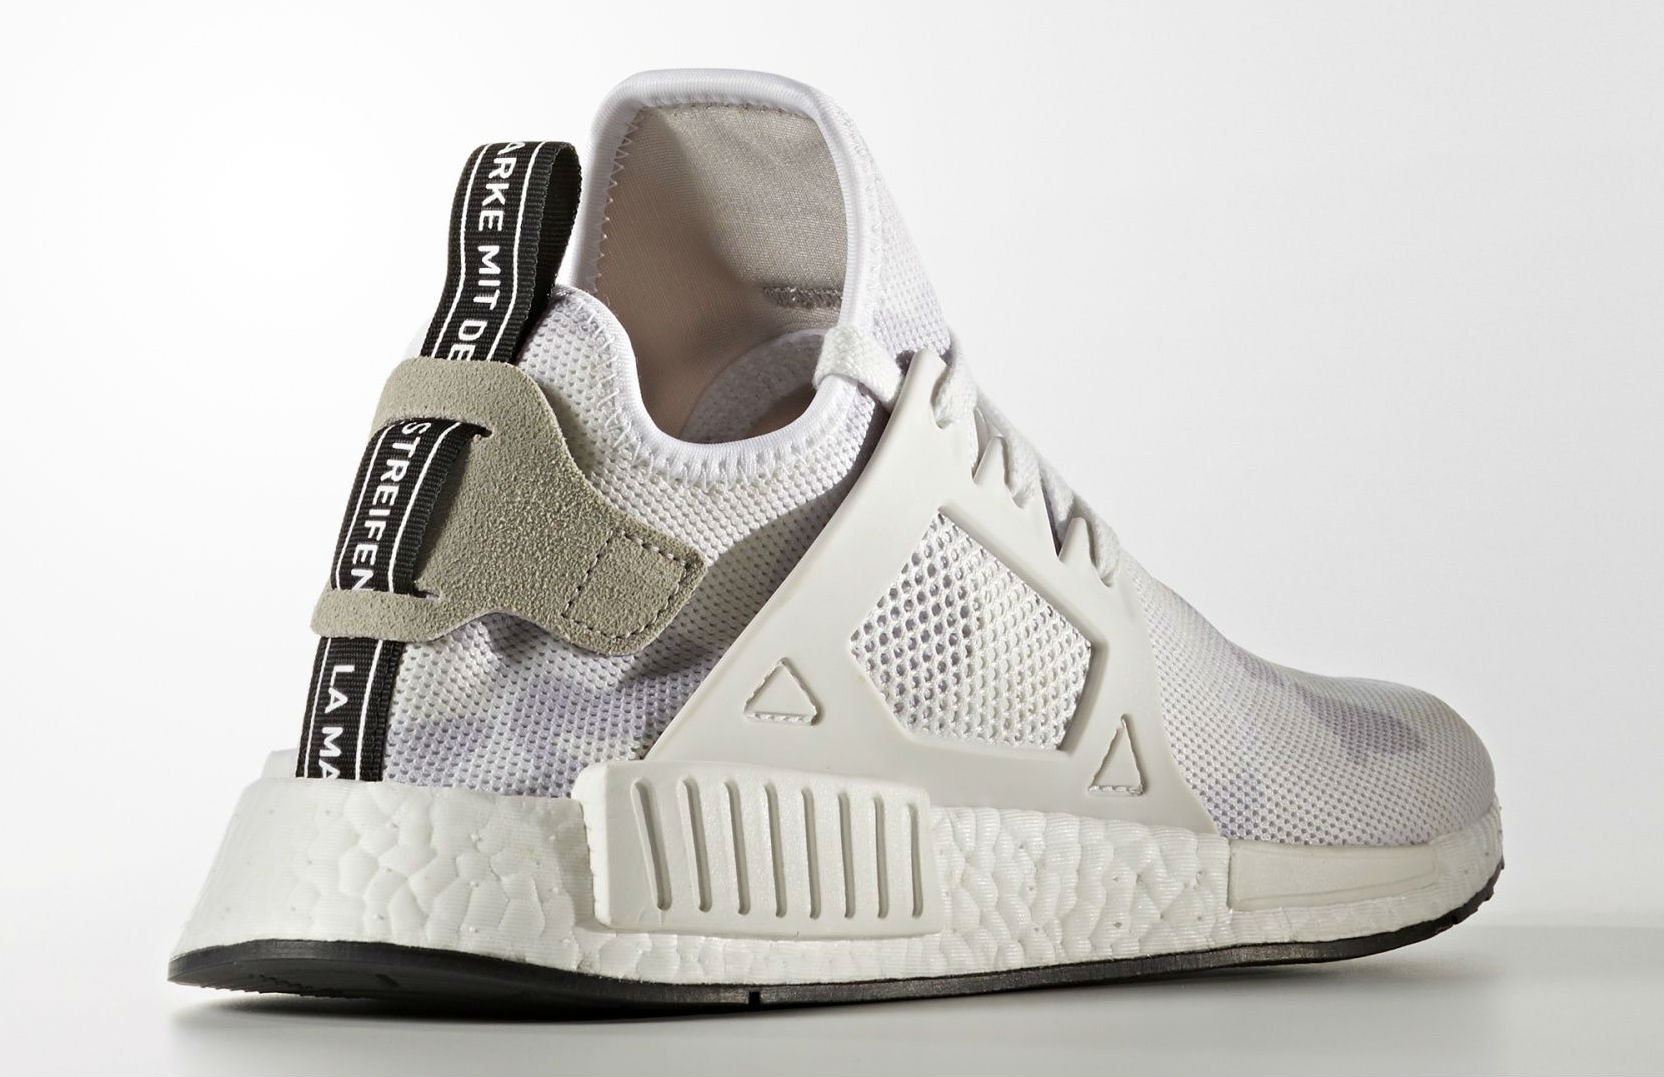 Buy Cheap NMD XR1 Black White at Wholesale Price Sophia